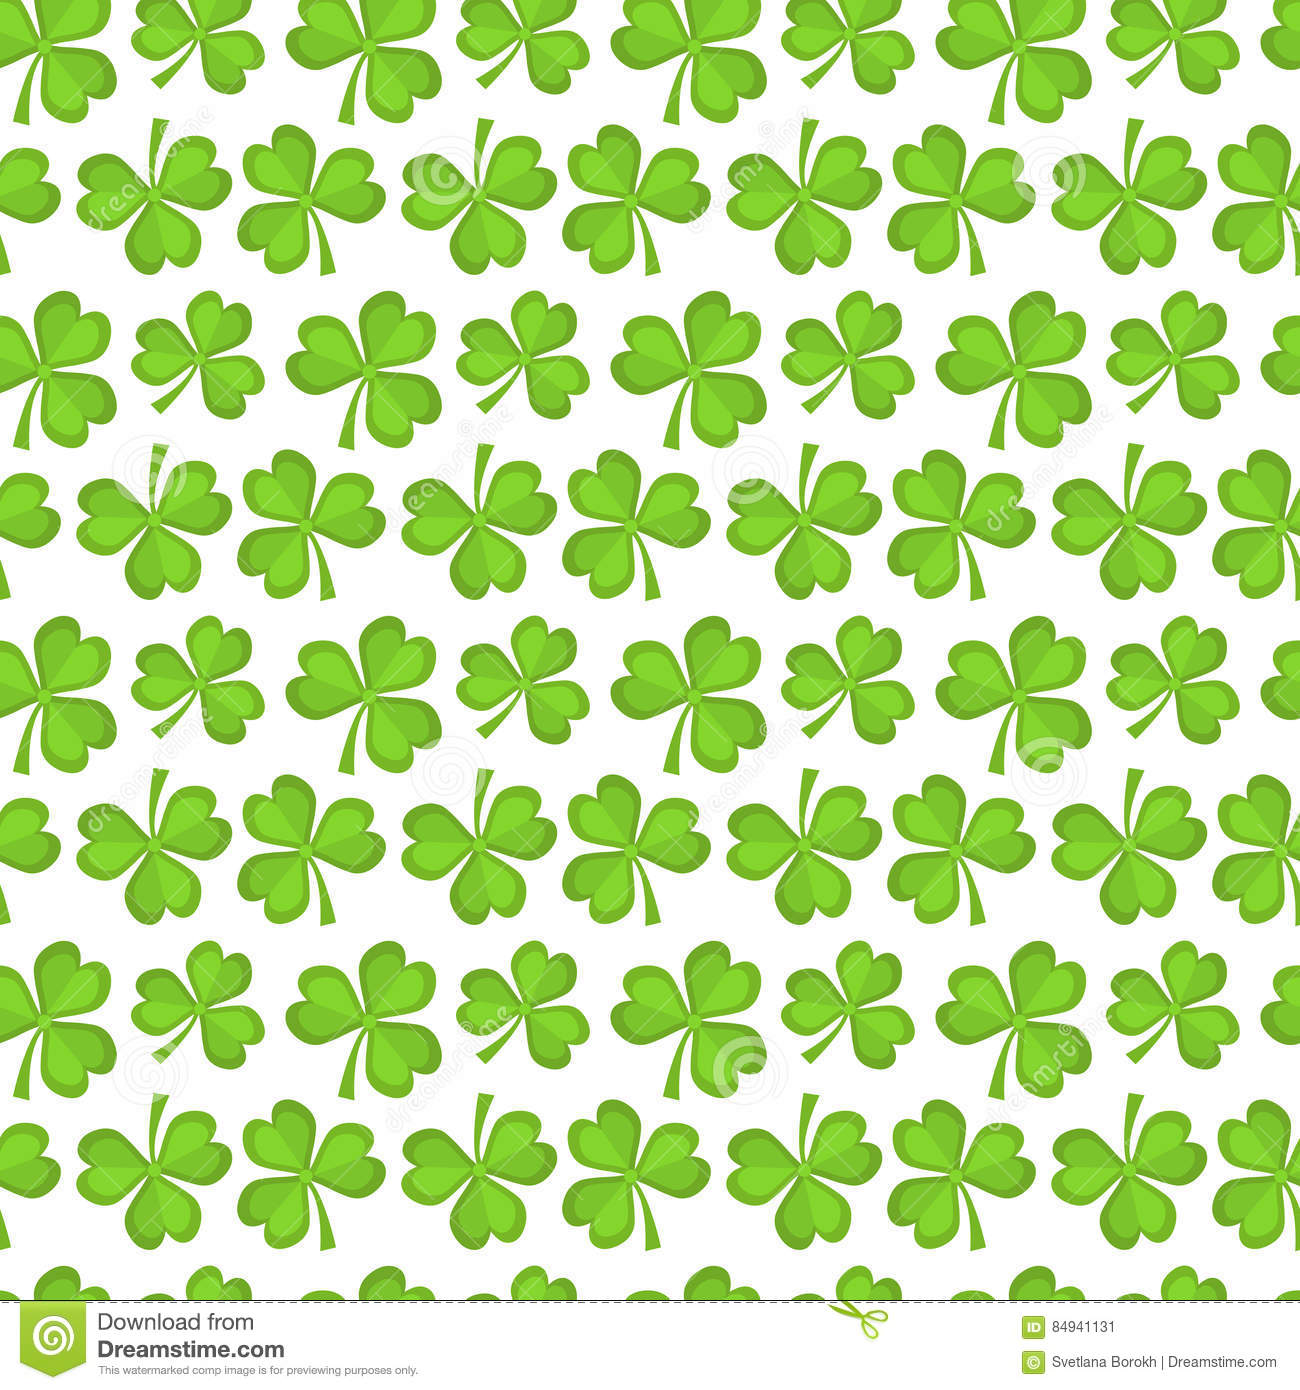 shamrock pattern wallpaper 1366x768 - photo #7